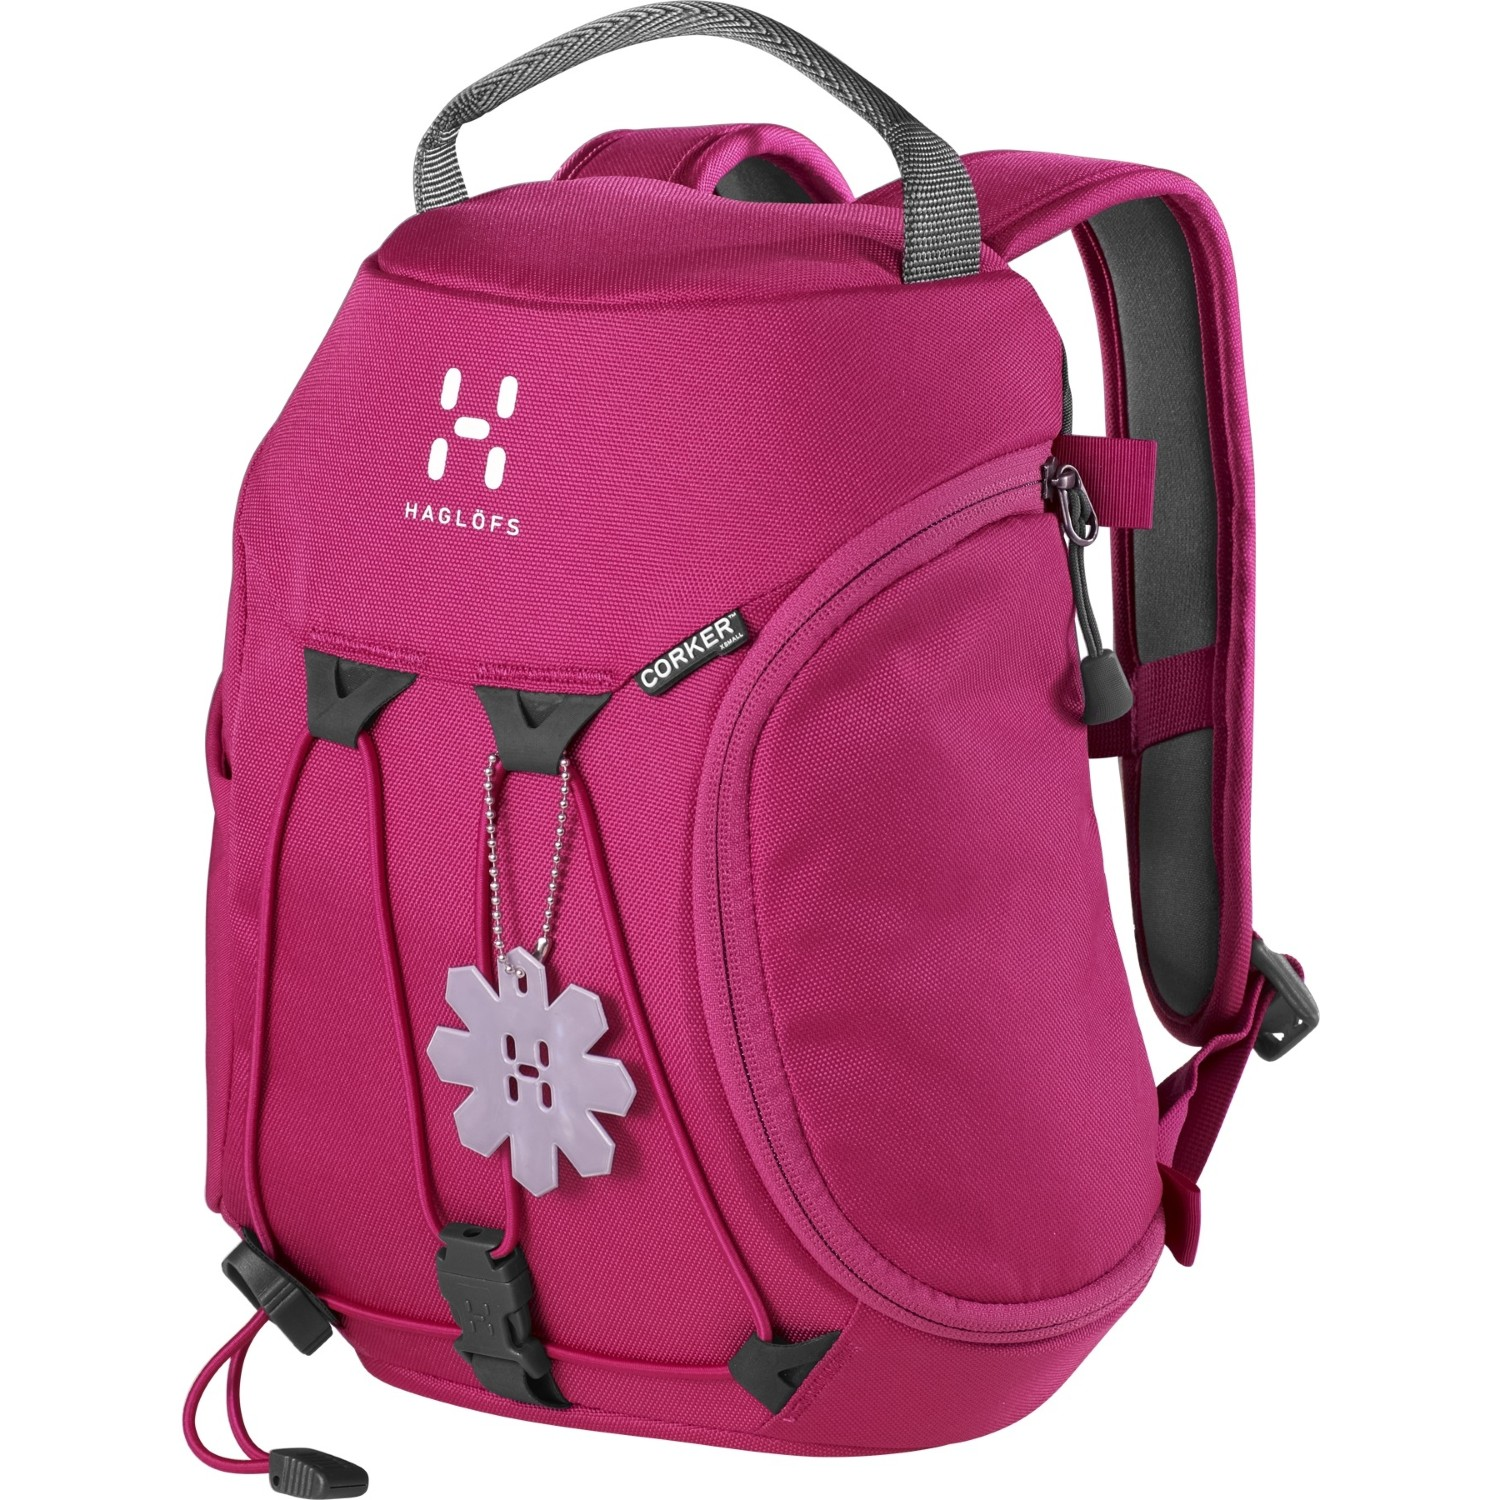 Best Kids Backpacks 6lNoicD8